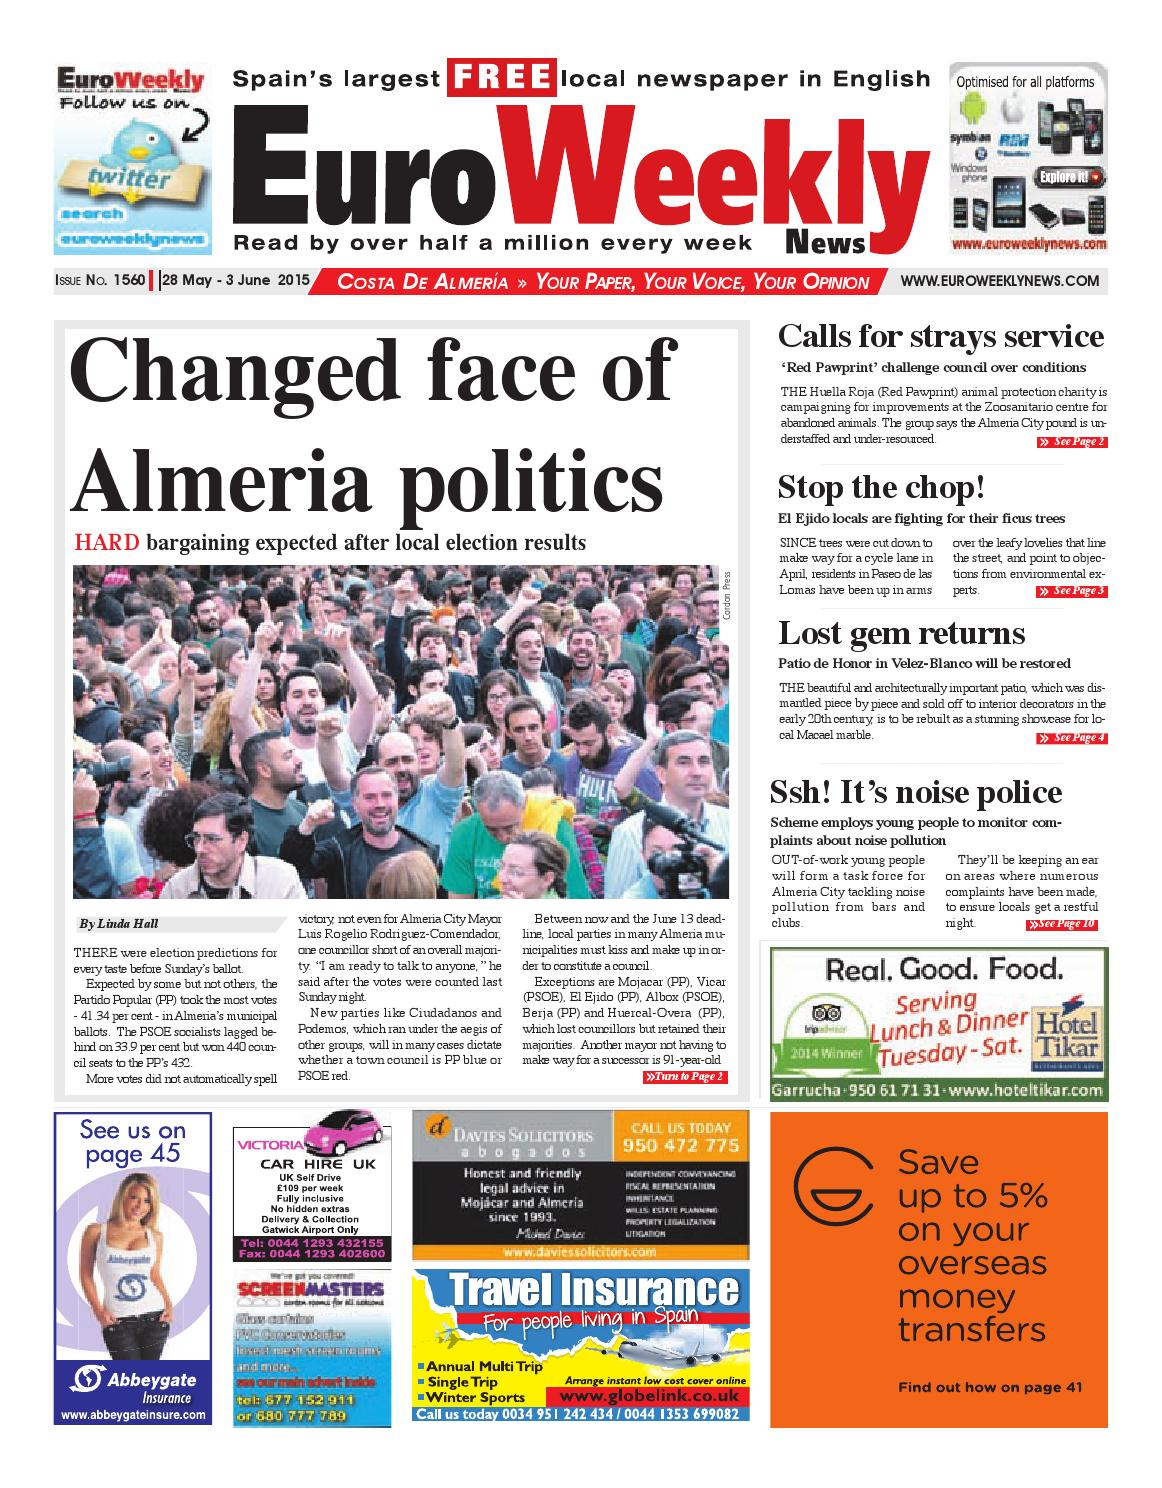 Euro Weekly News Costa De Almeria 28 May 3 June 2015 Issue  # Rogelio Muebles San Rafael